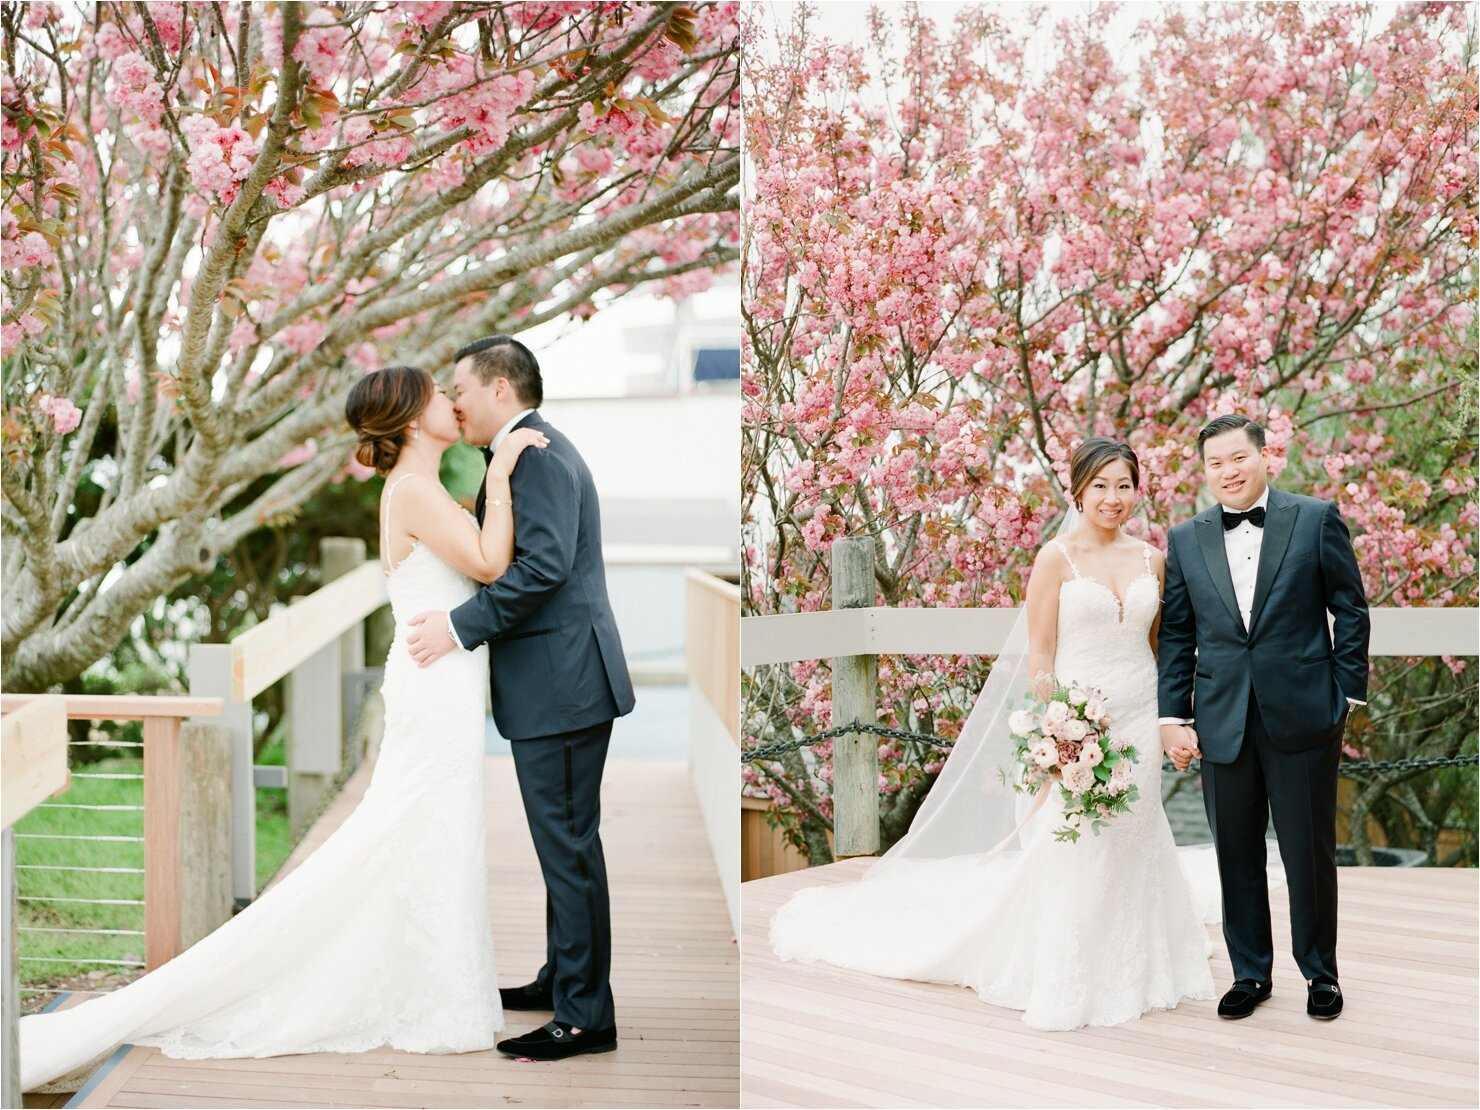 First Look Photo in front of Cherry Blossoms at Gurney's Montauk